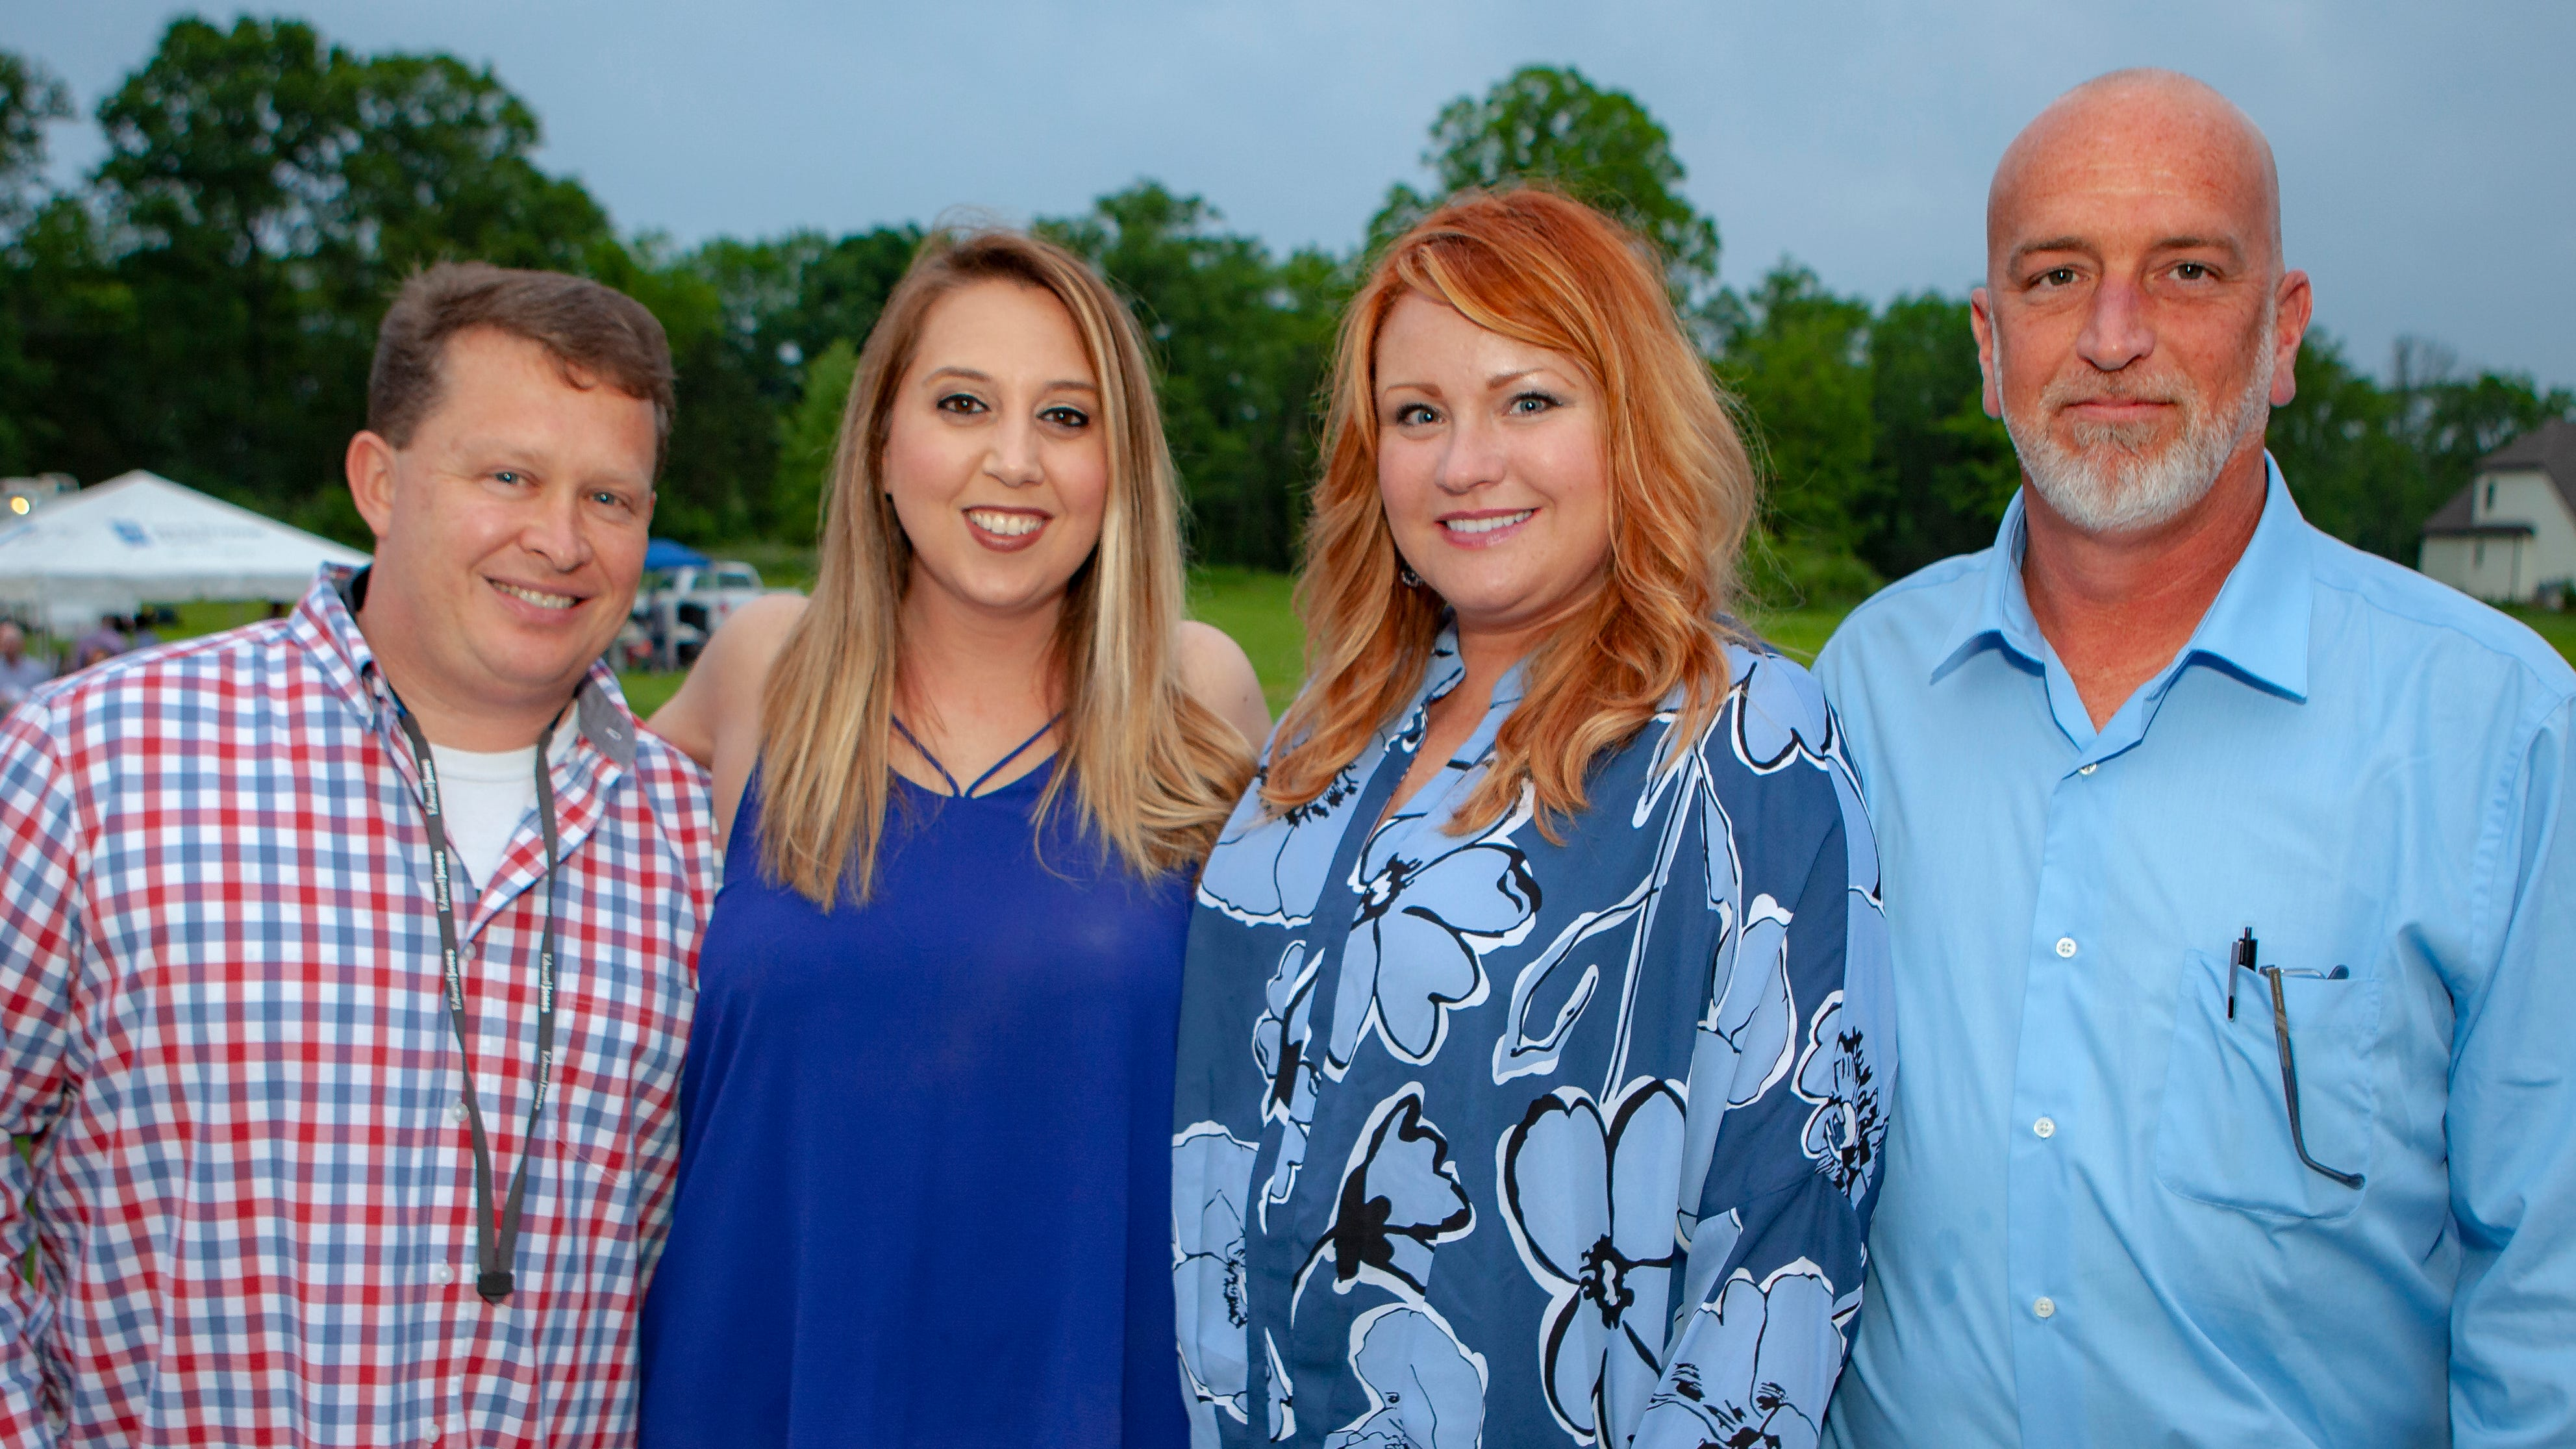 Alan and Amanda Brown, Jamie Craig and Tony Weigant enjoyed a Cajun feast under the stars at United Way's Red, White and Bayou, held Friday, May 10, 2019 at the home of Jimmy & Nikkole Aho.